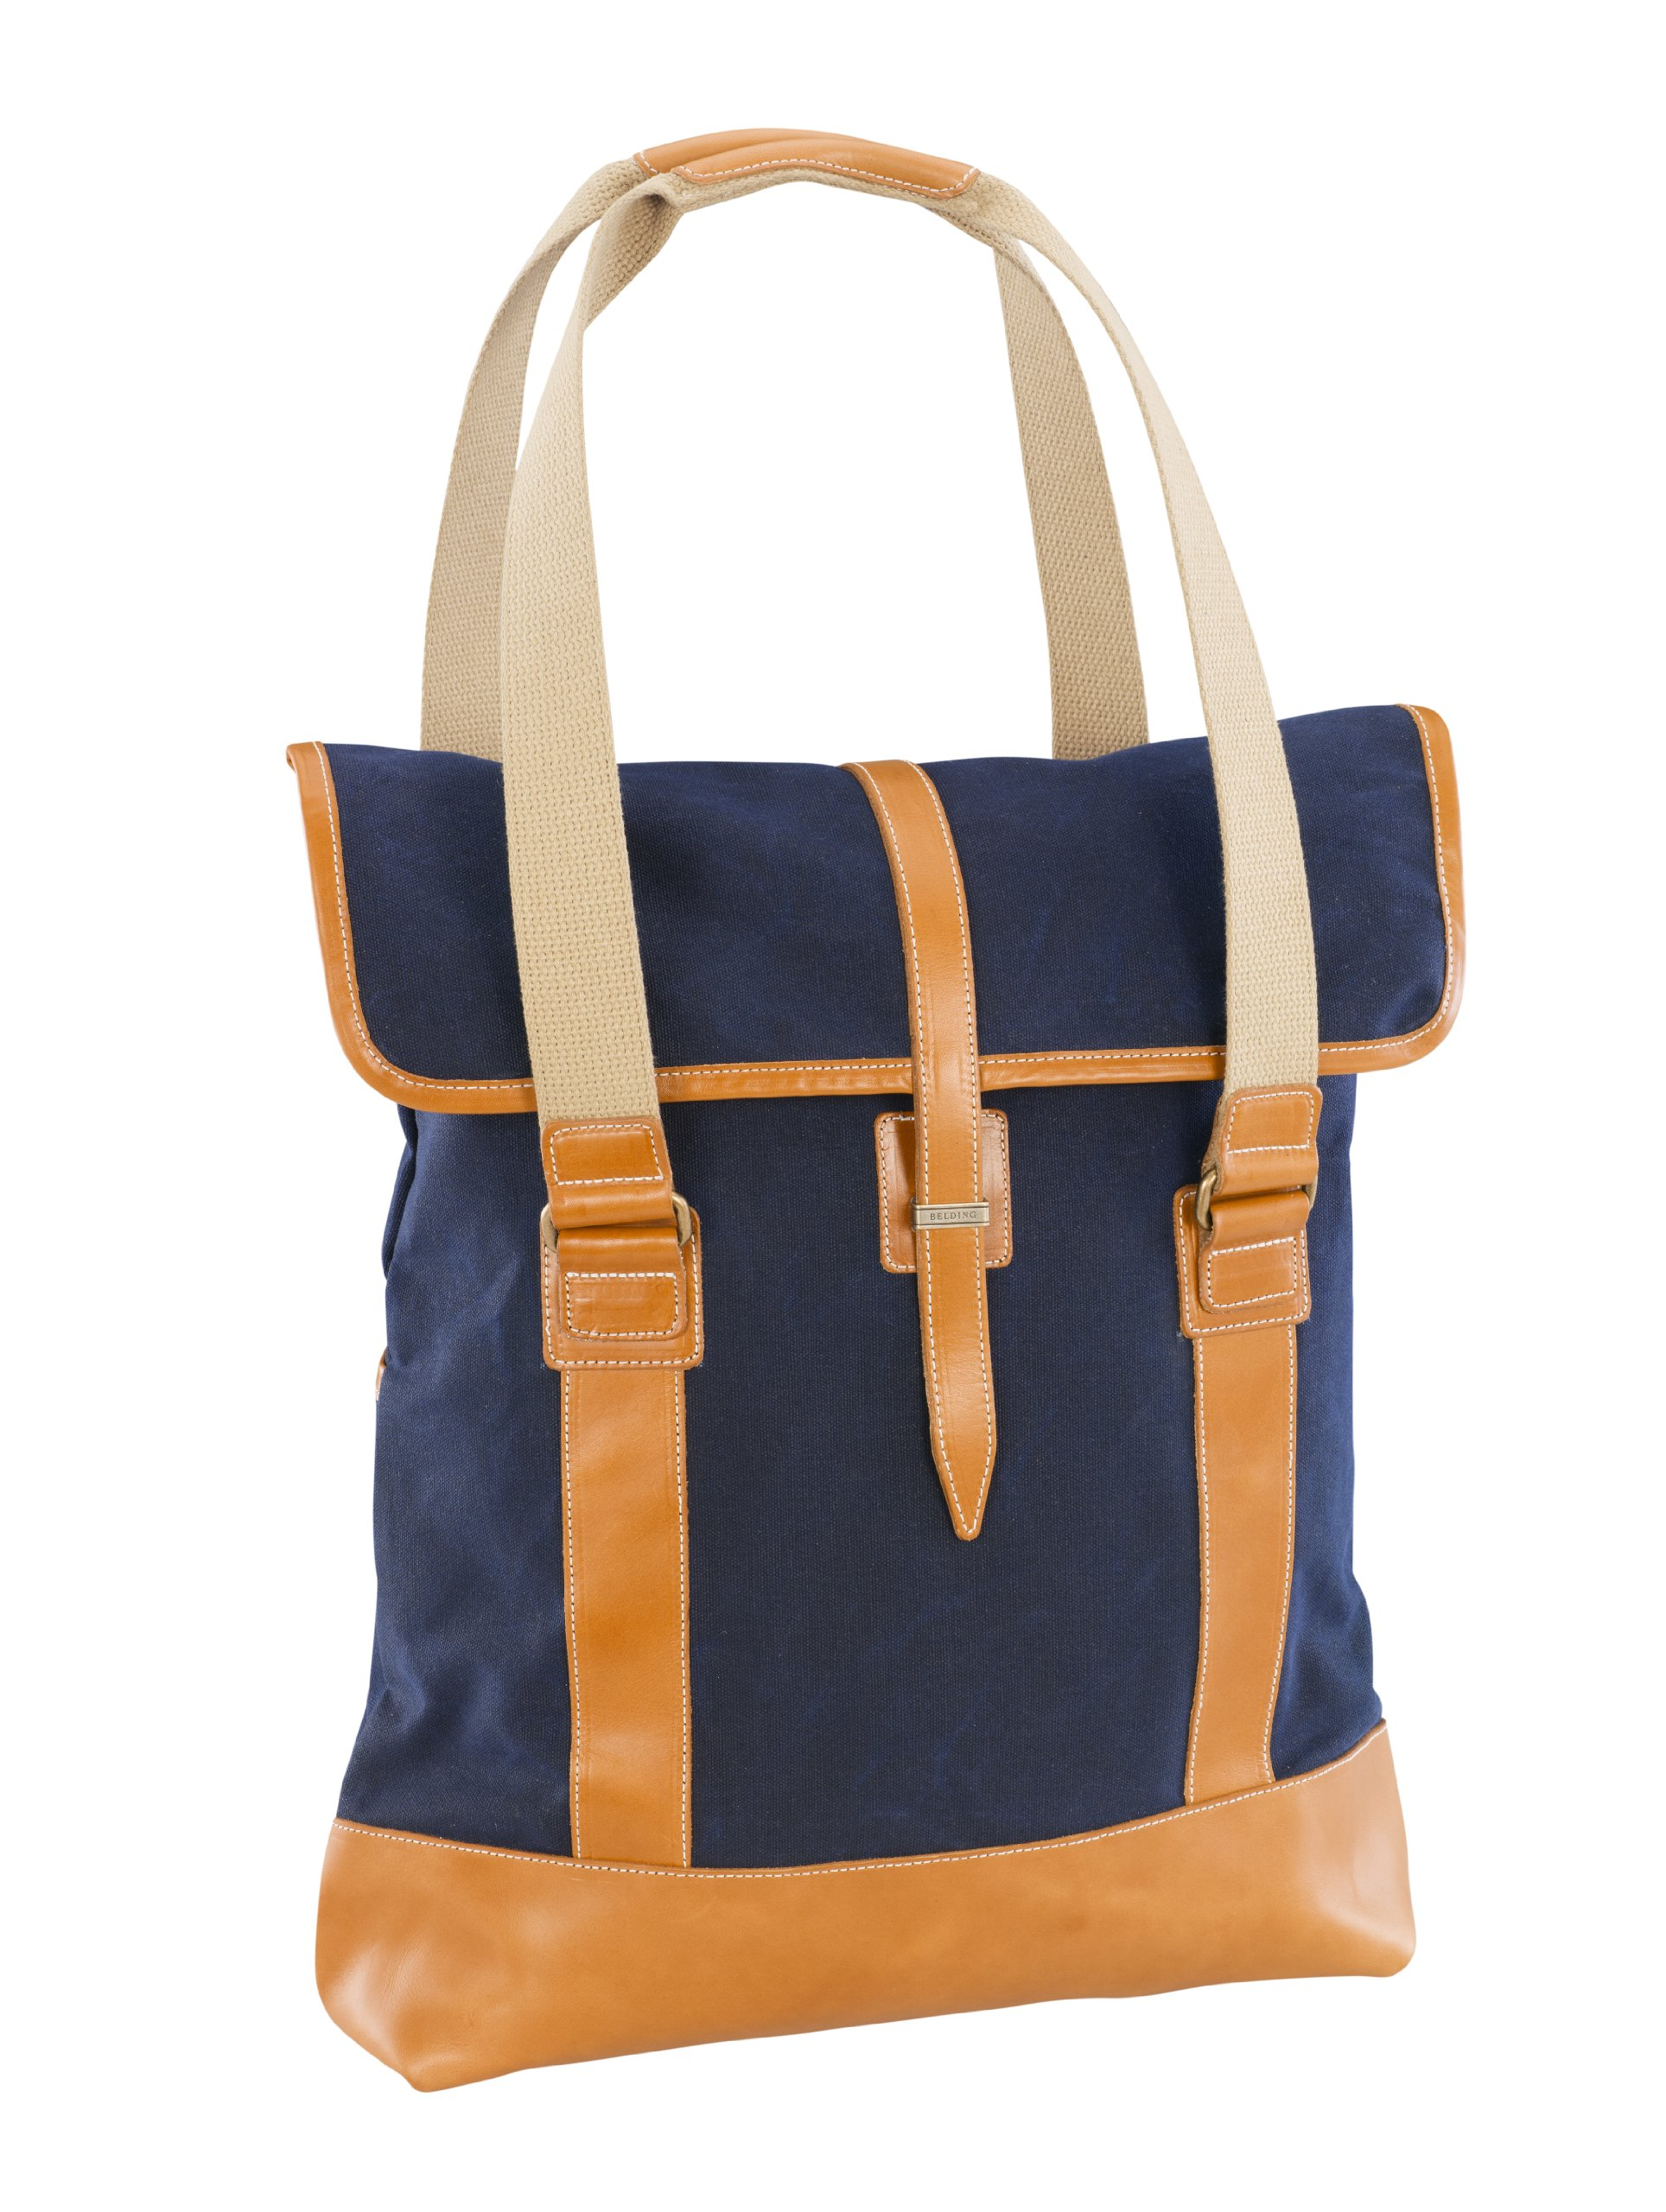 BELDING American Collection Tote Bag, Navy